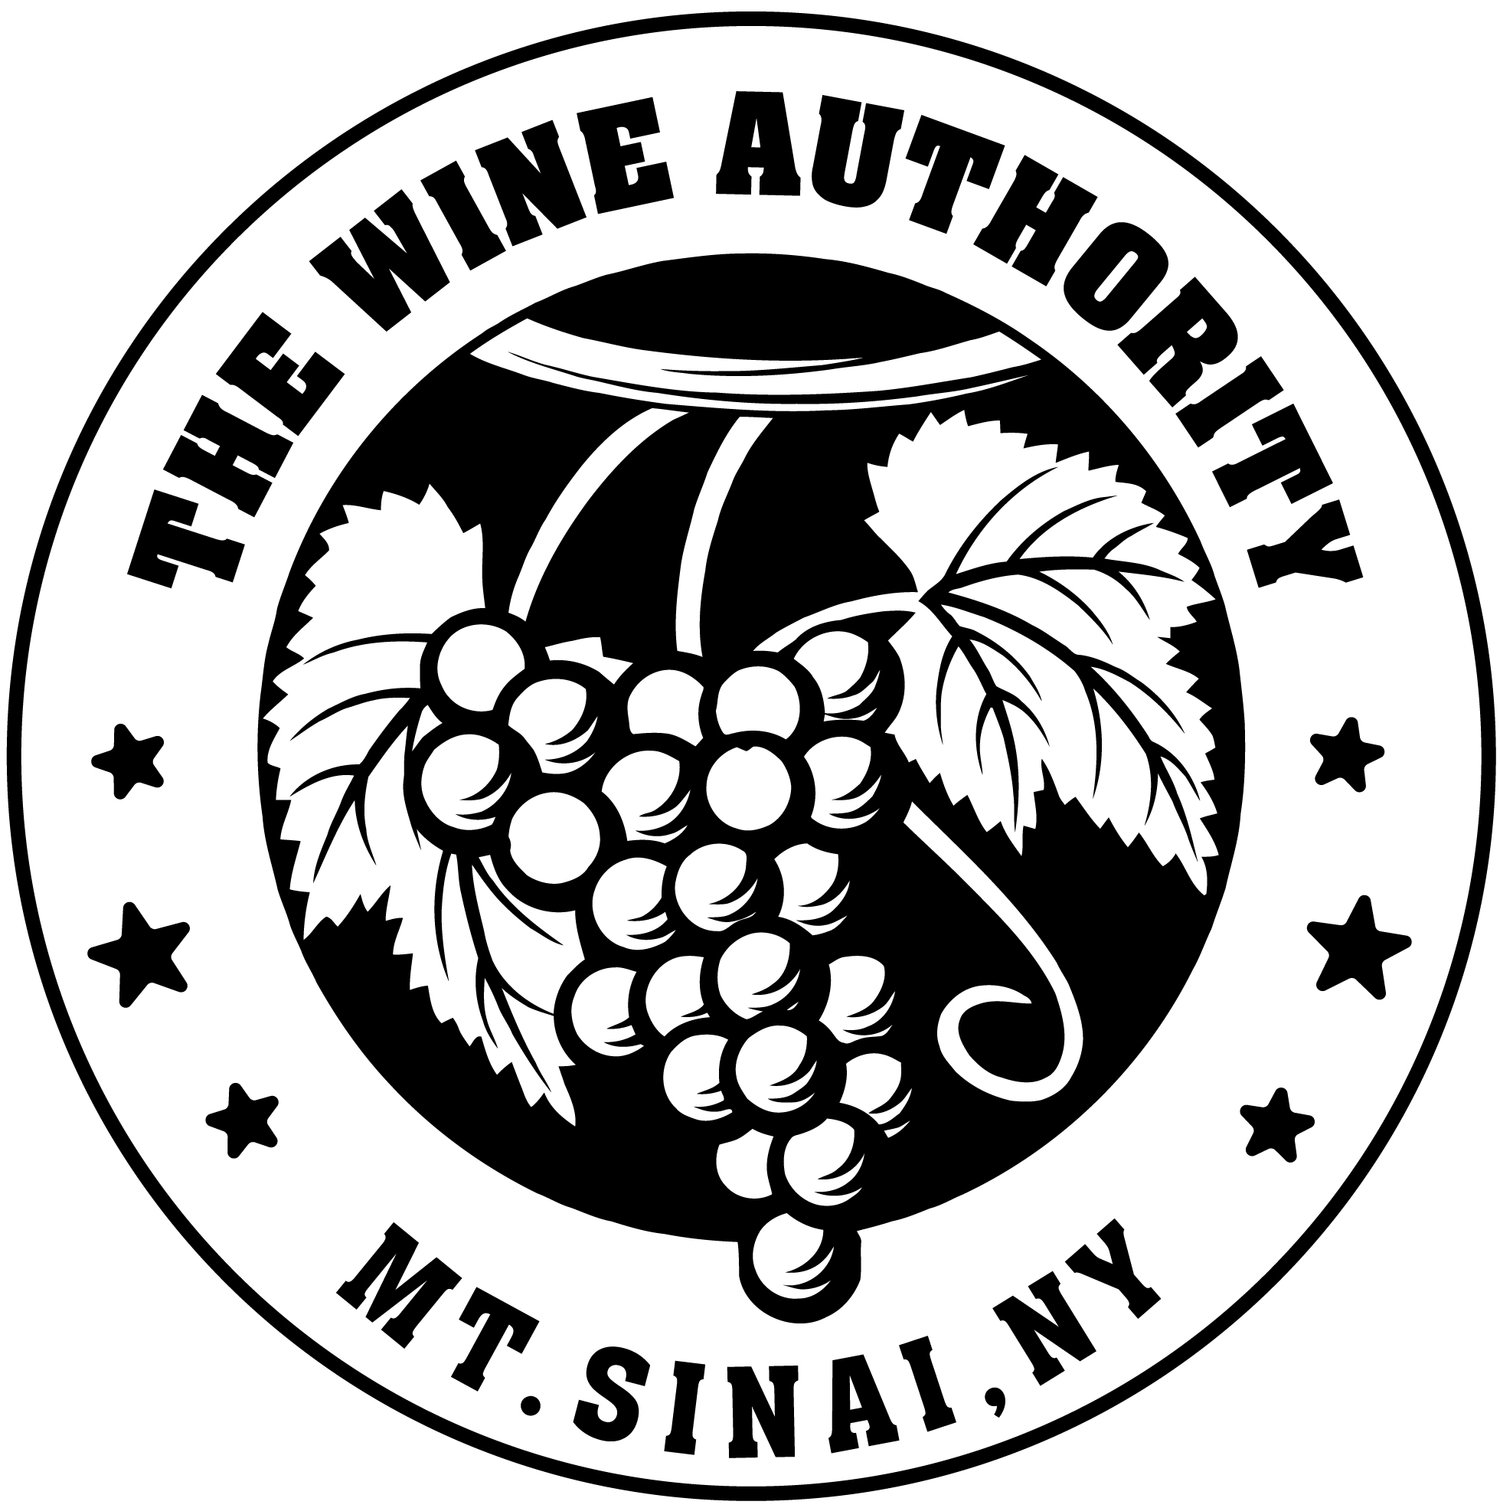 The Wine Authority